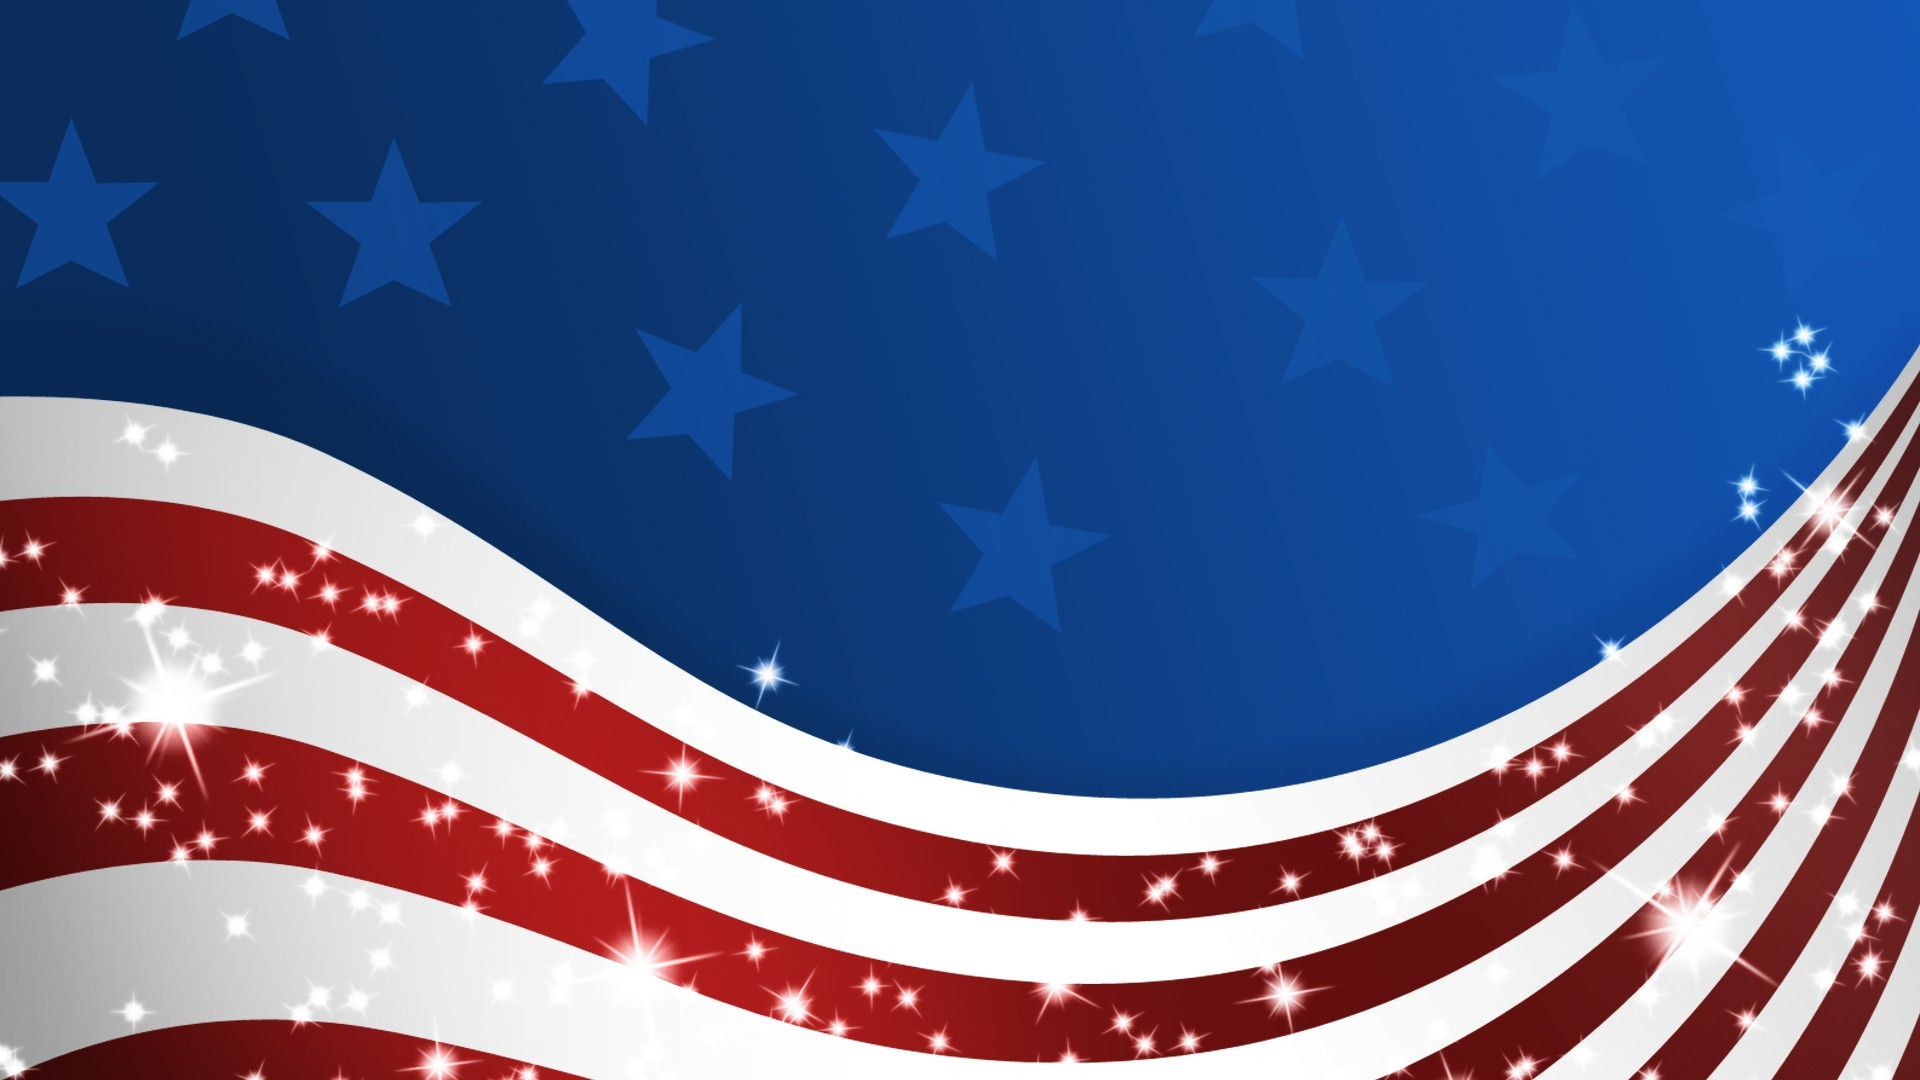 patriotic flag of america stars and stripes wallpaper background .